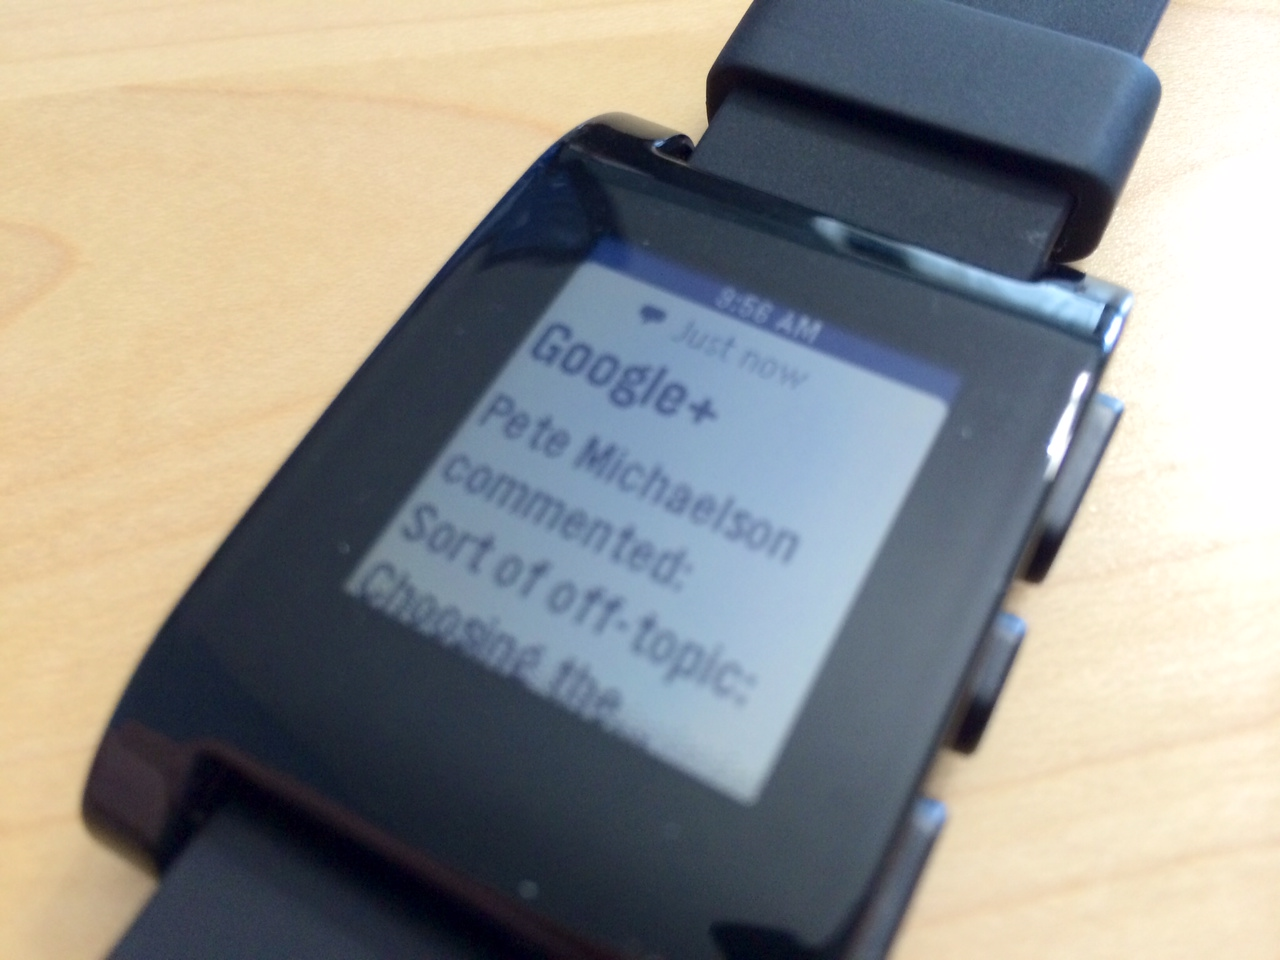 google plus on pebble